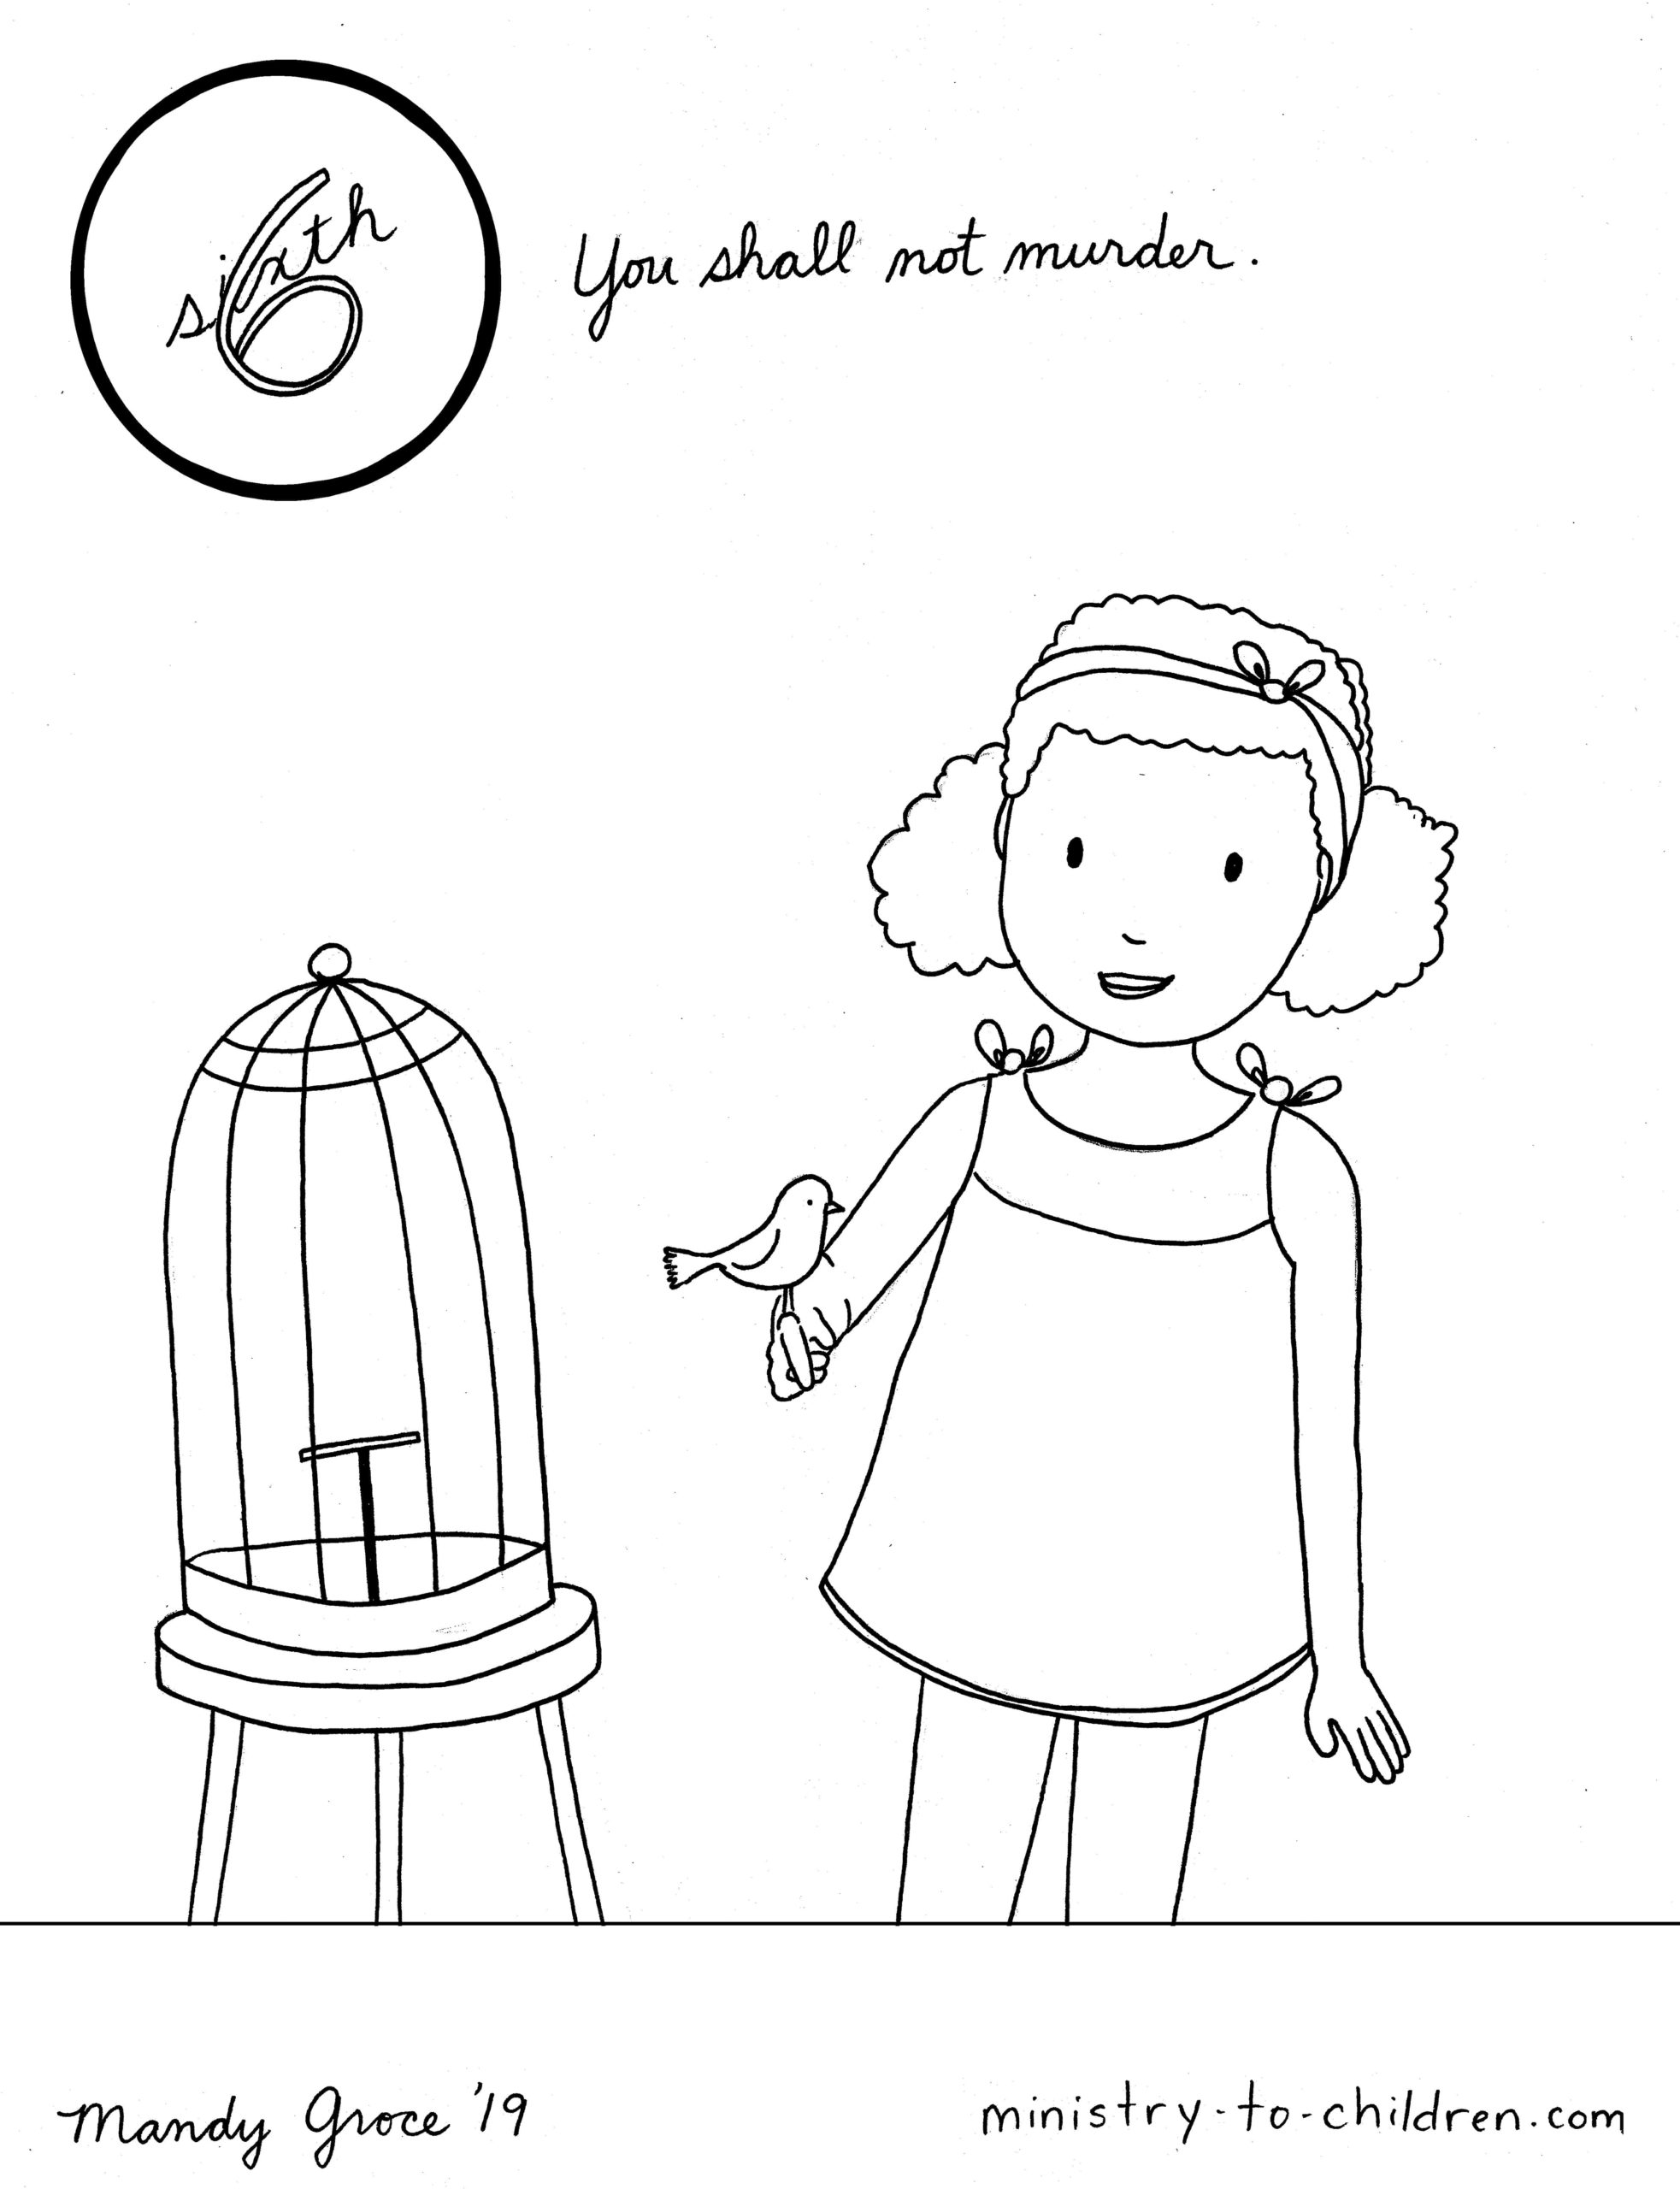 6th Commandment Coloring Page: You Shall Not Murder